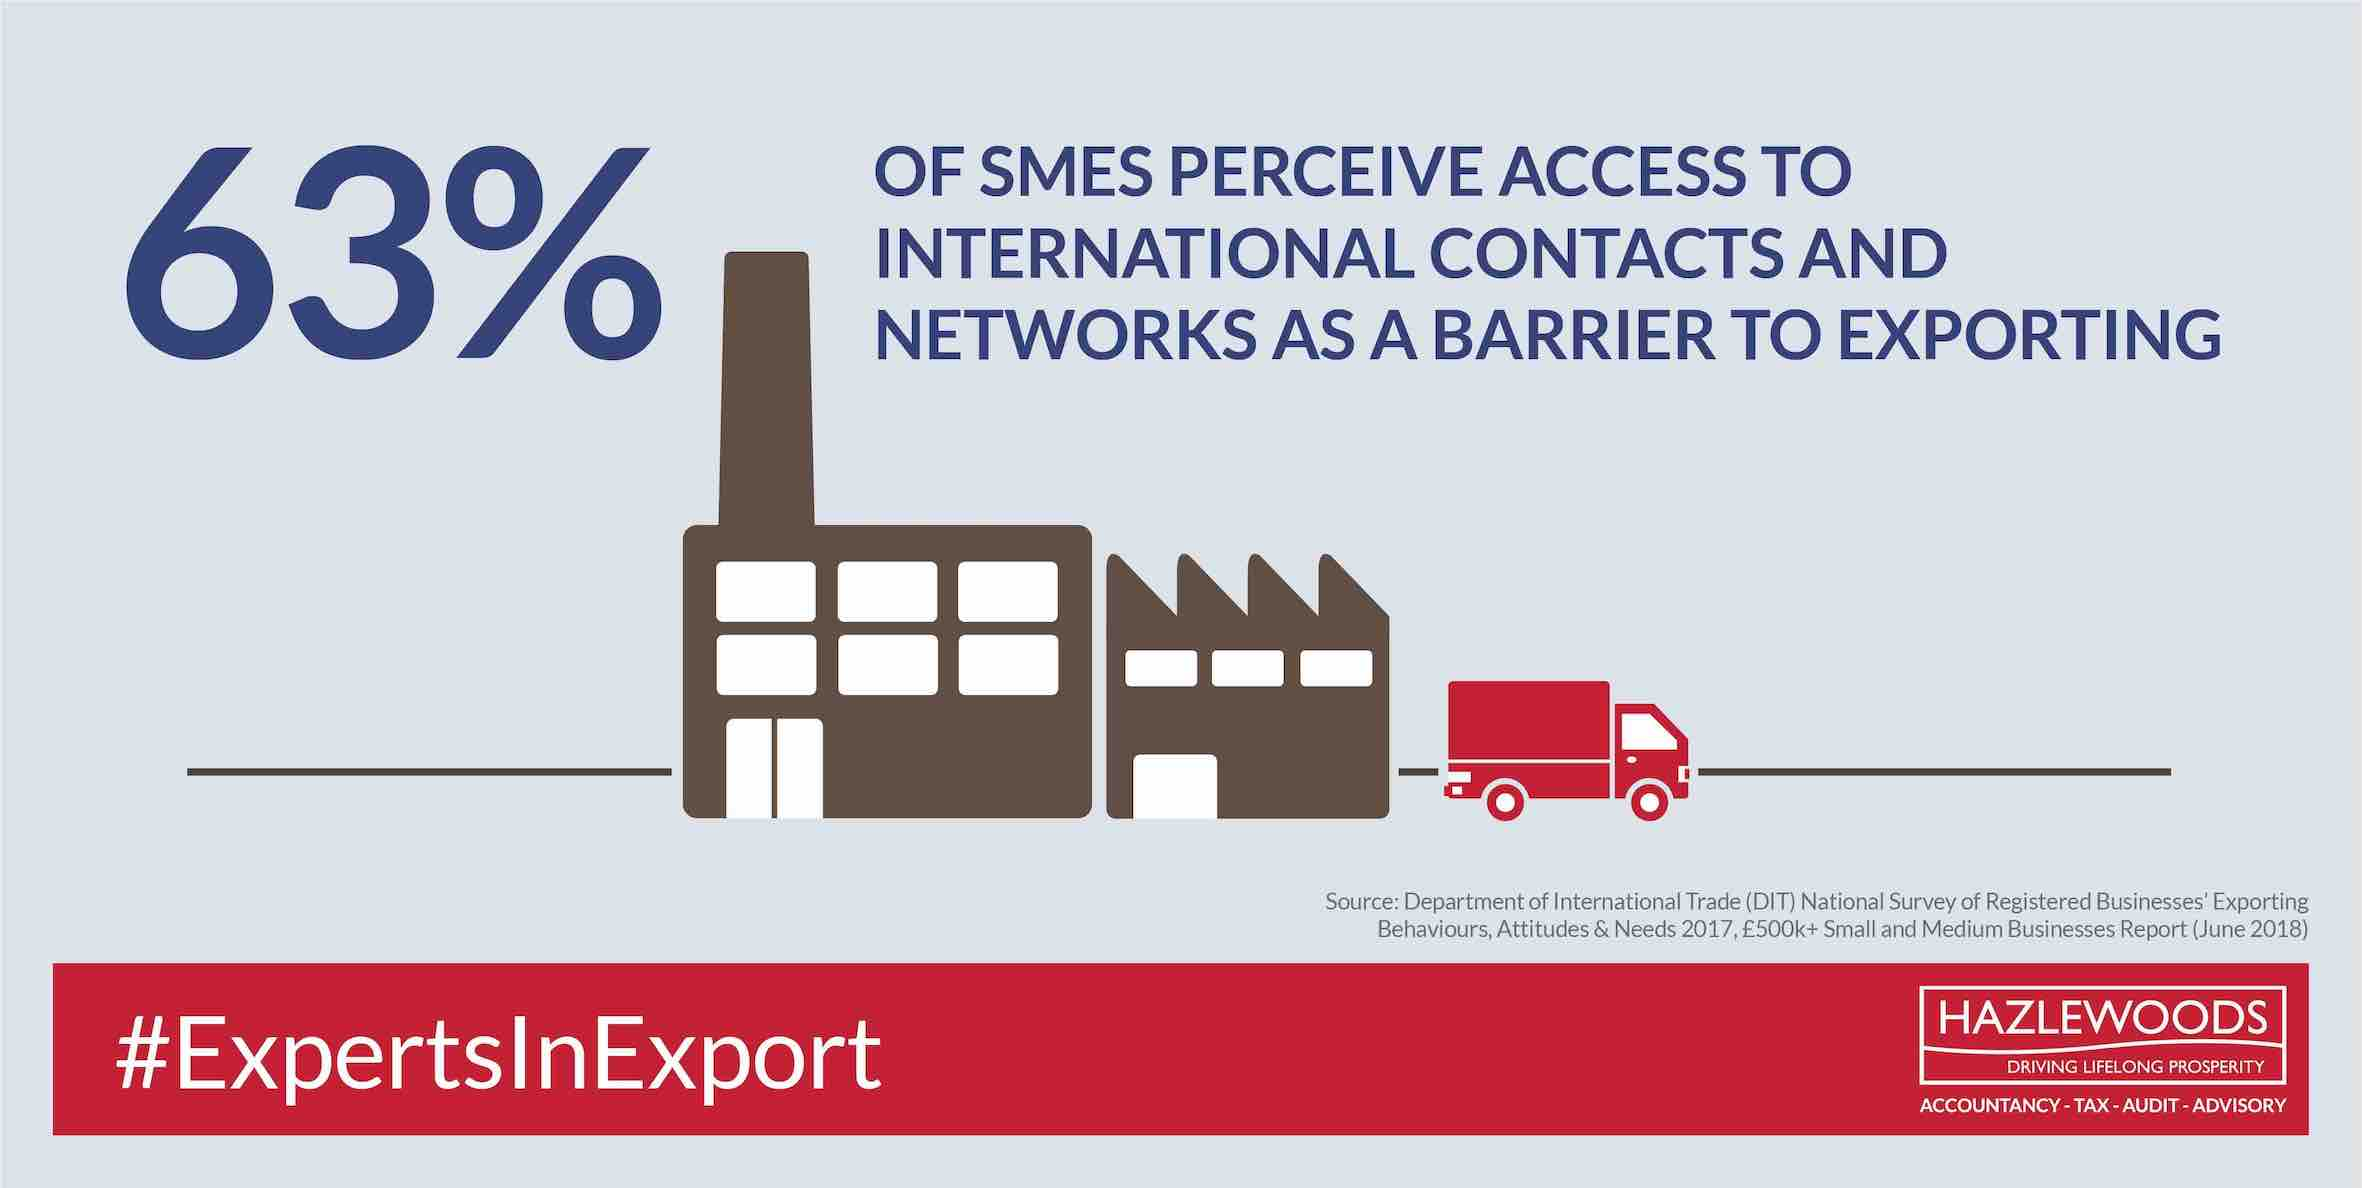 3742 HWDS Exports infographic v4